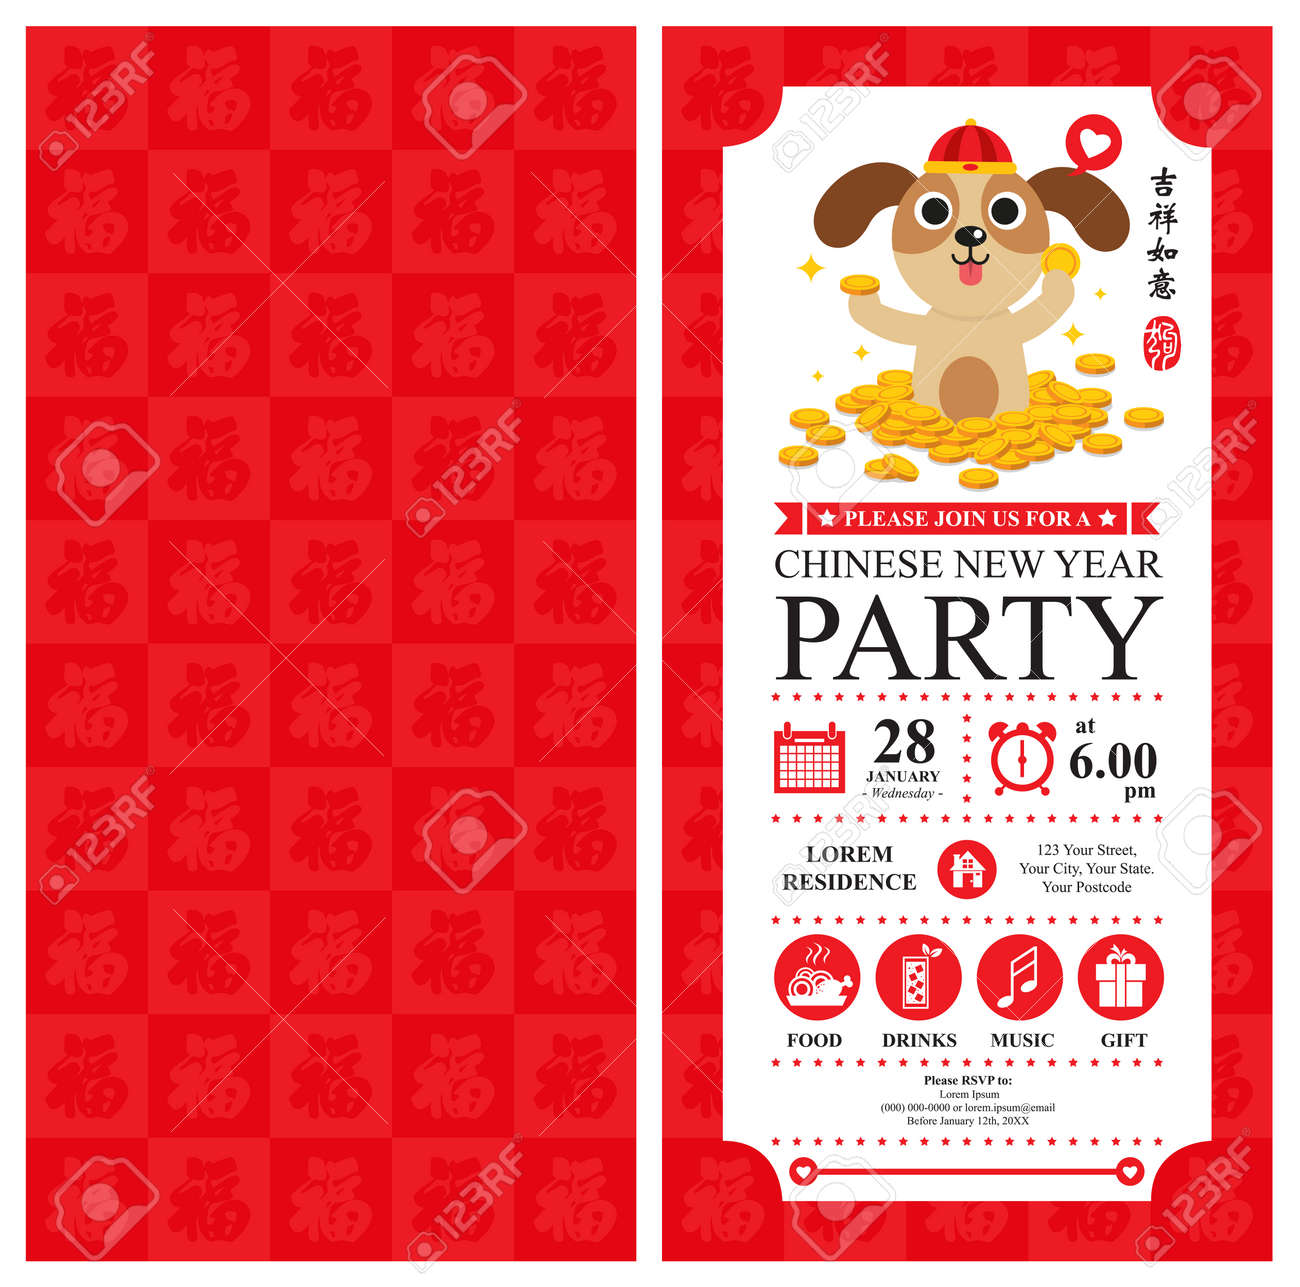 chinese new year invitation celebrate year of dog stock vector 94427731